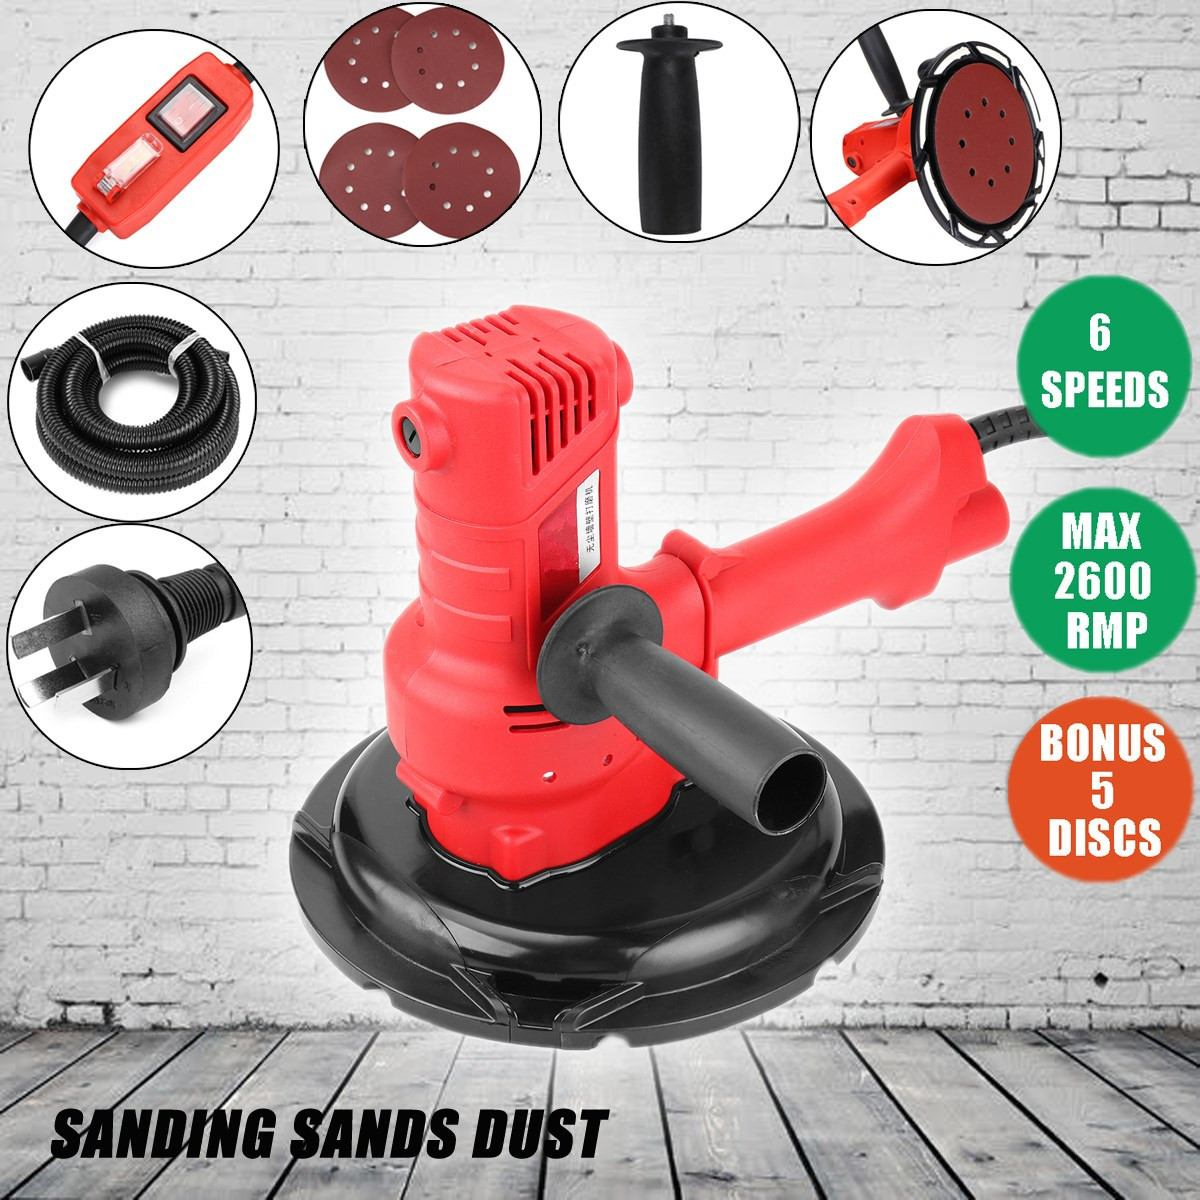 Doersupp AC220V 2600rpm Wall Grinding Machine Portable Vacuum Clean Type Dry Wall Sander With A Set Accessories Power ToolsDoersupp AC220V 2600rpm Wall Grinding Machine Portable Vacuum Clean Type Dry Wall Sander With A Set Accessories Power Tools